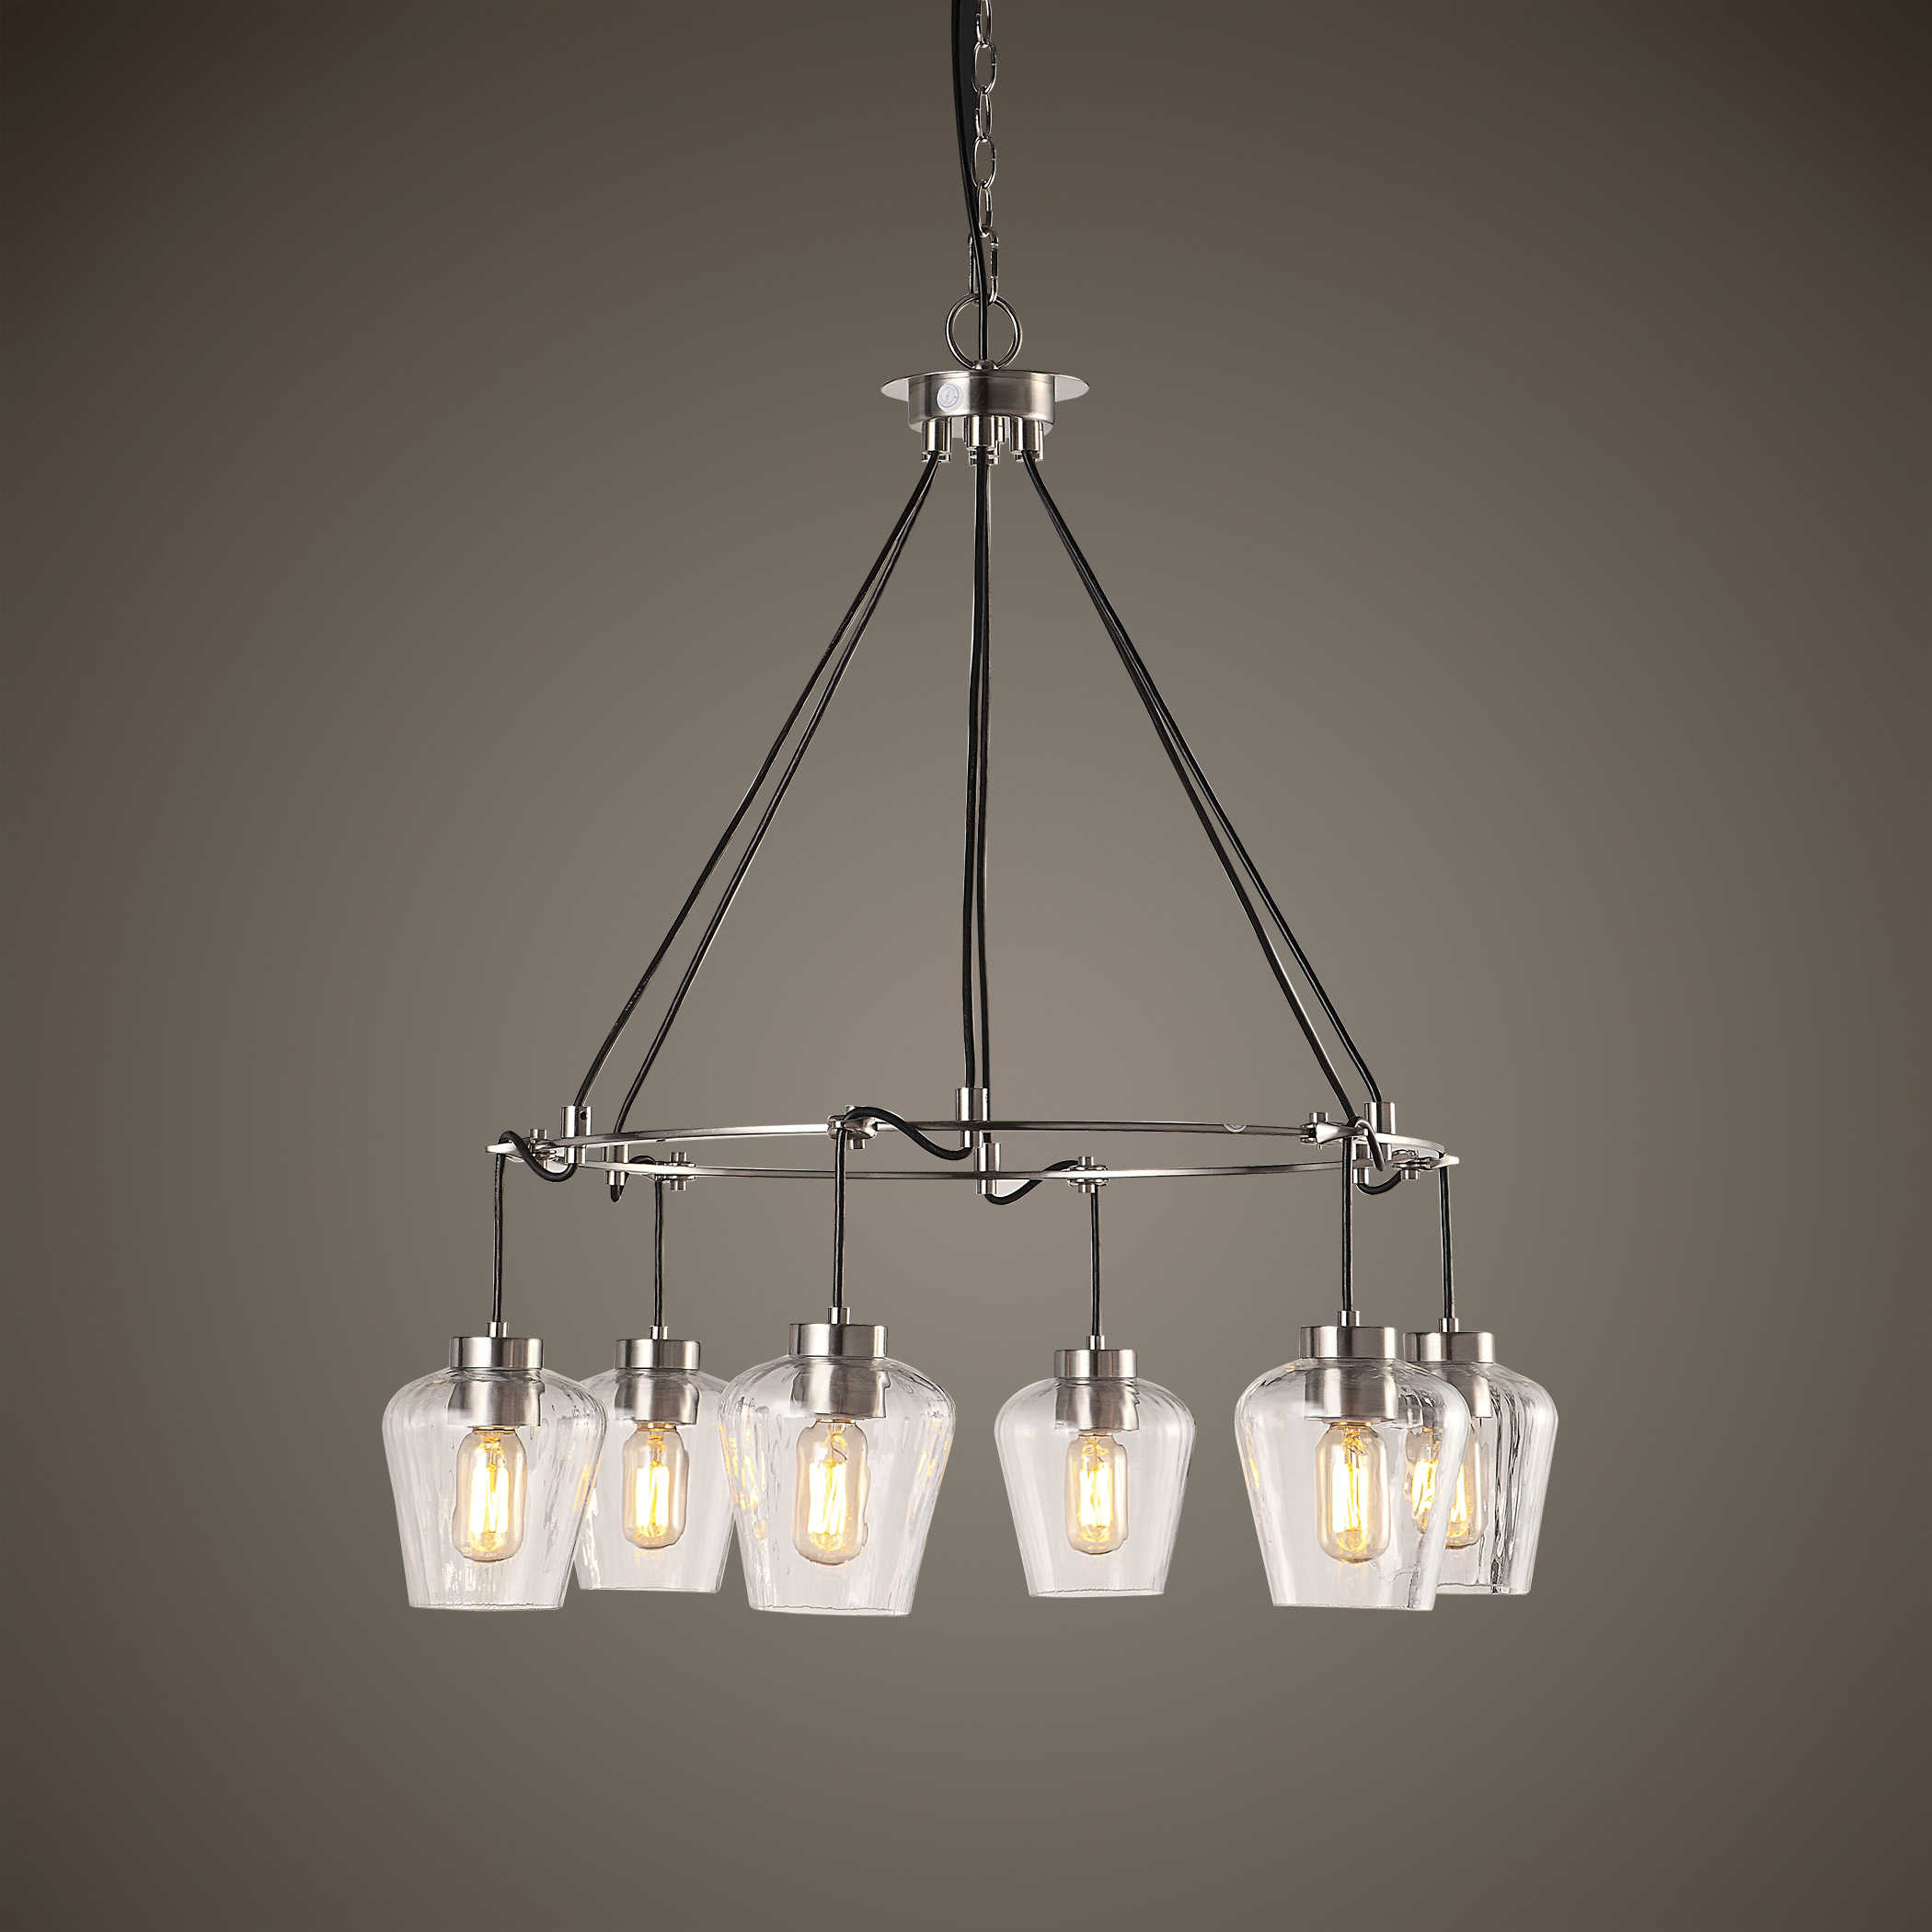 Wiring Diagram For 5 Light Chandelier In Addition Industrial Modern